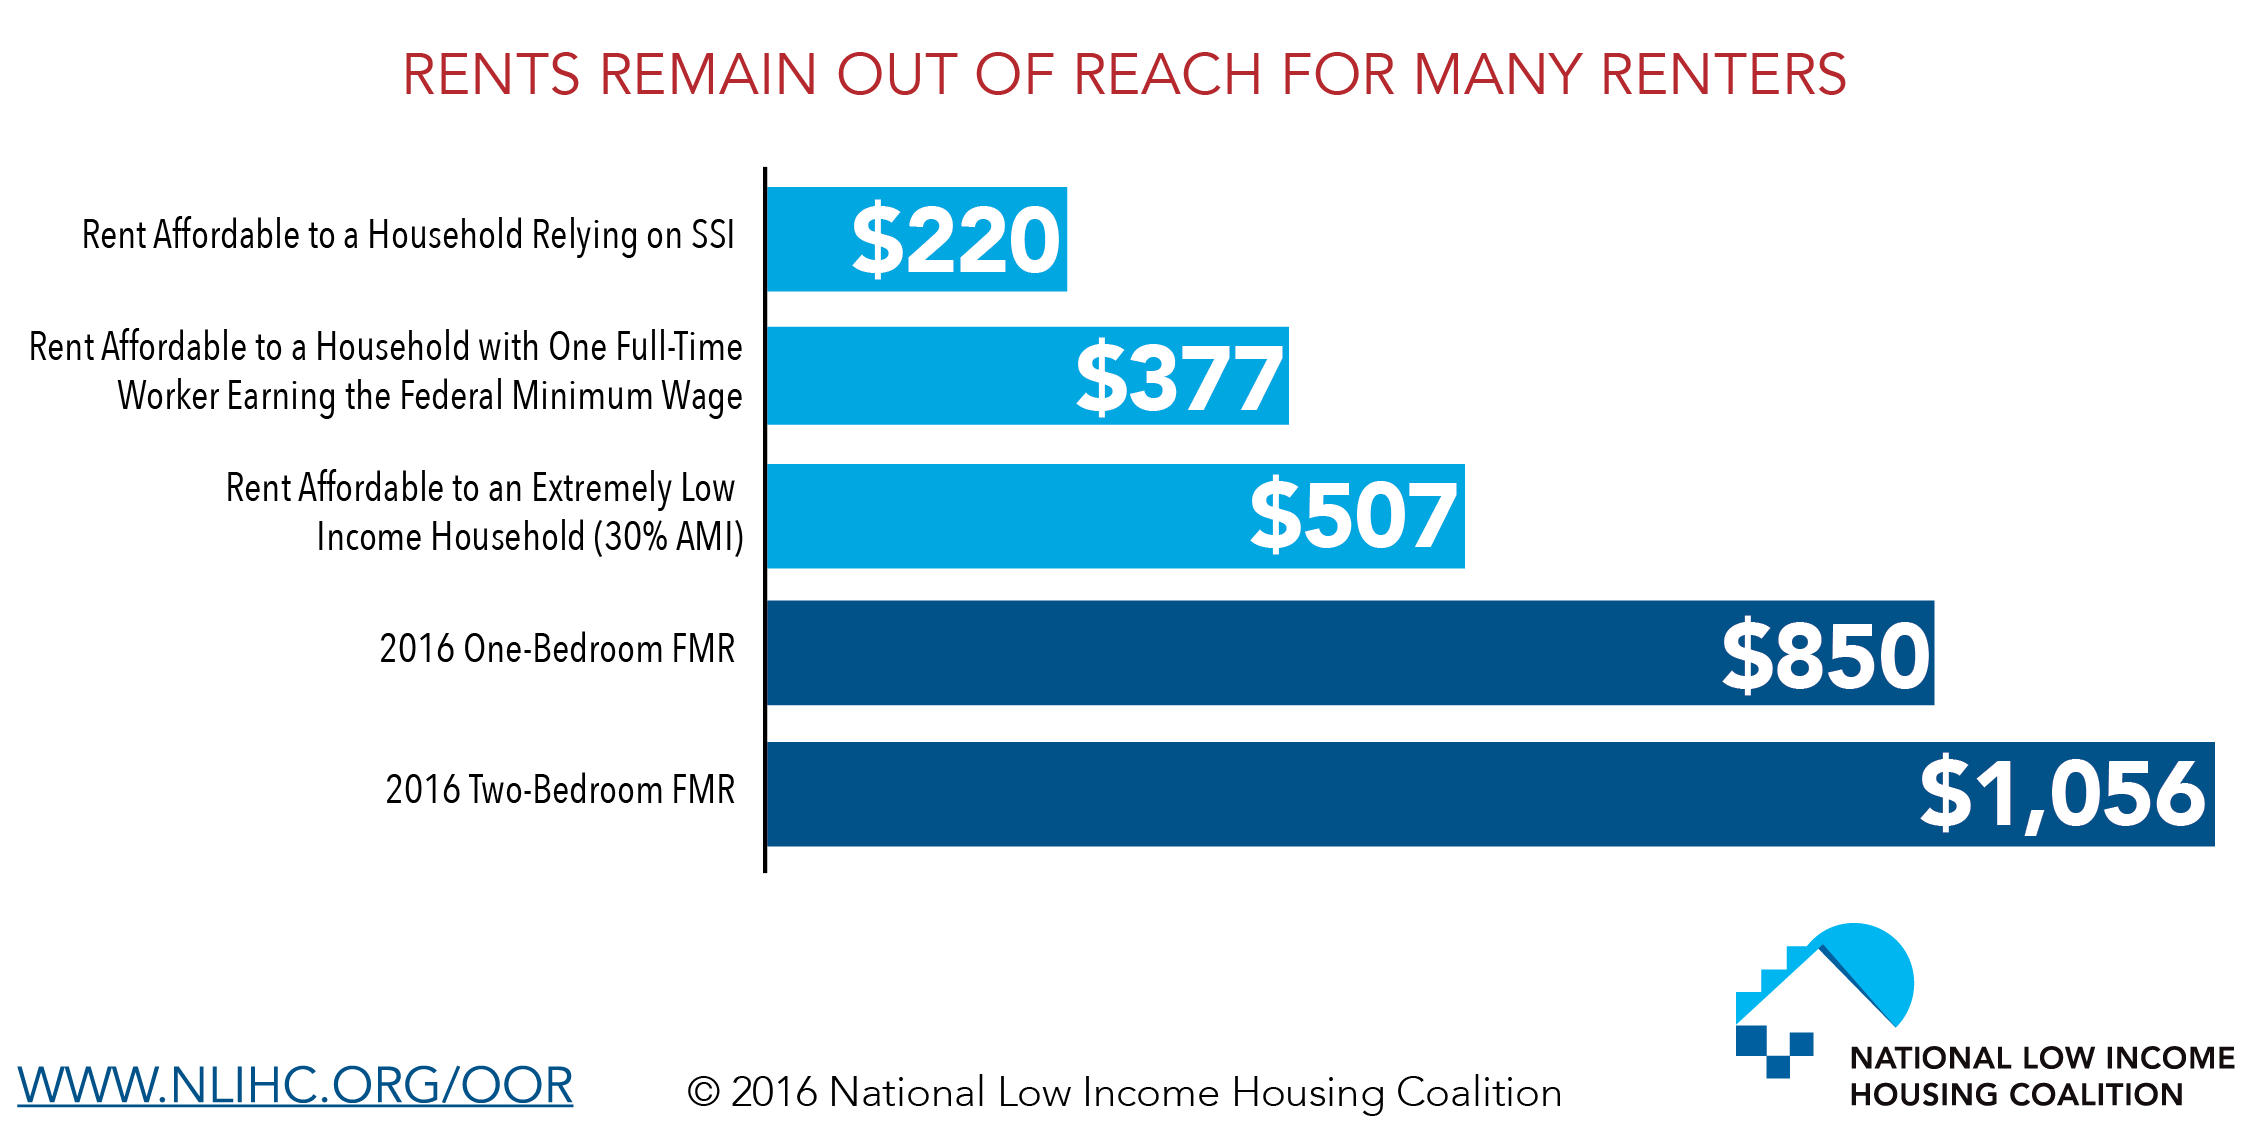 Rents Remain Out of Reach for Many Renters